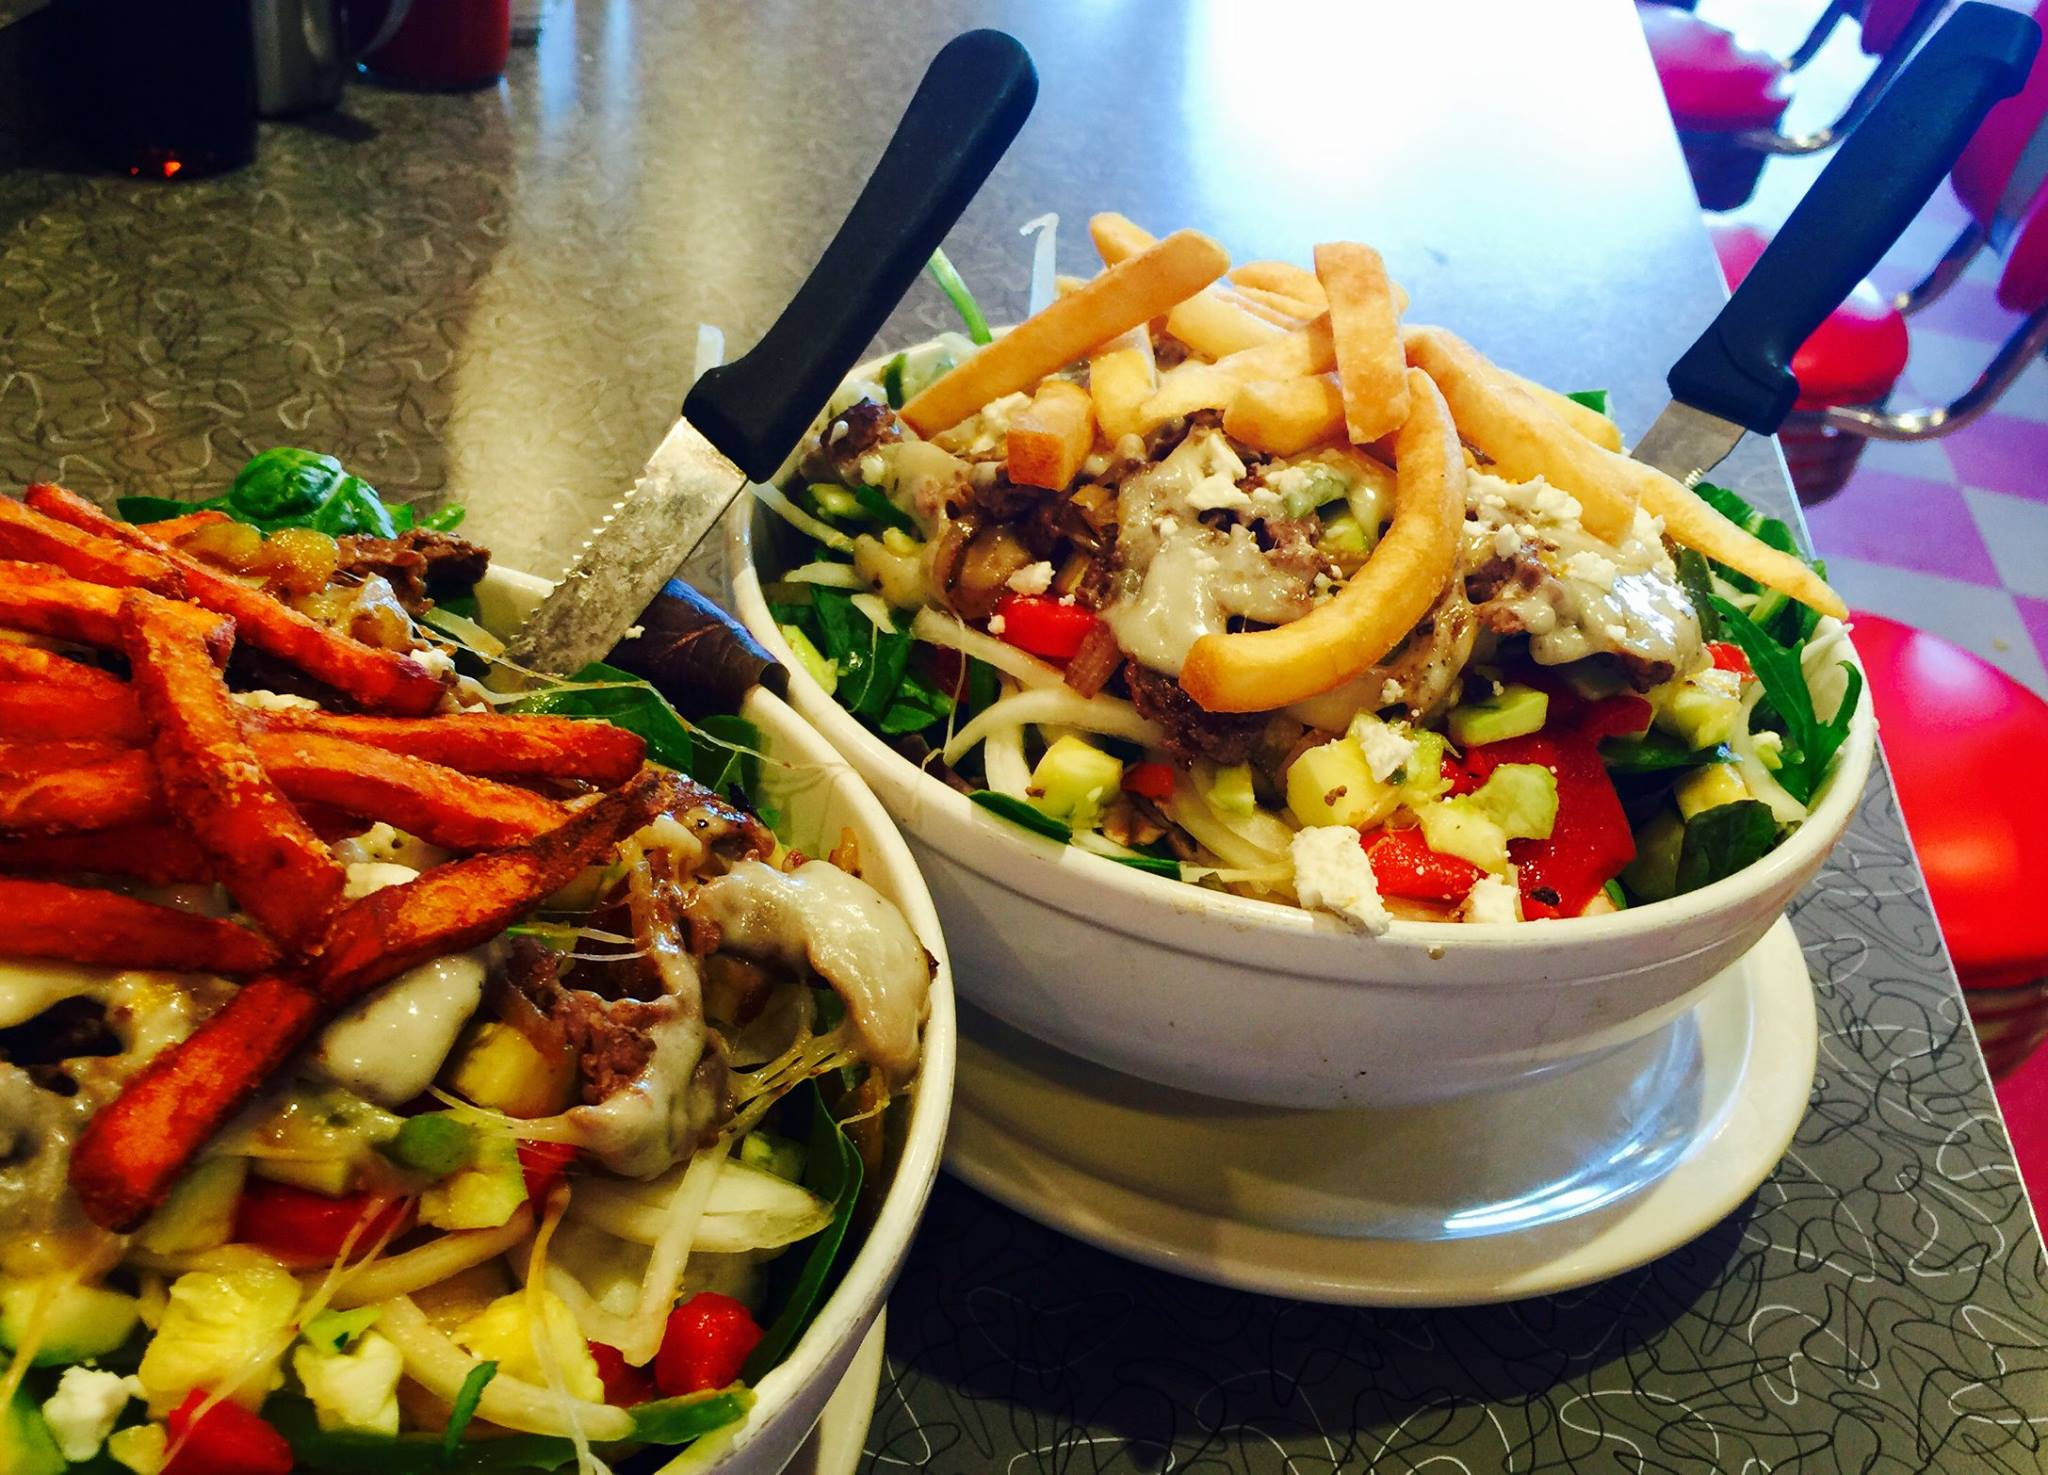 Bowl of salad with many toppings